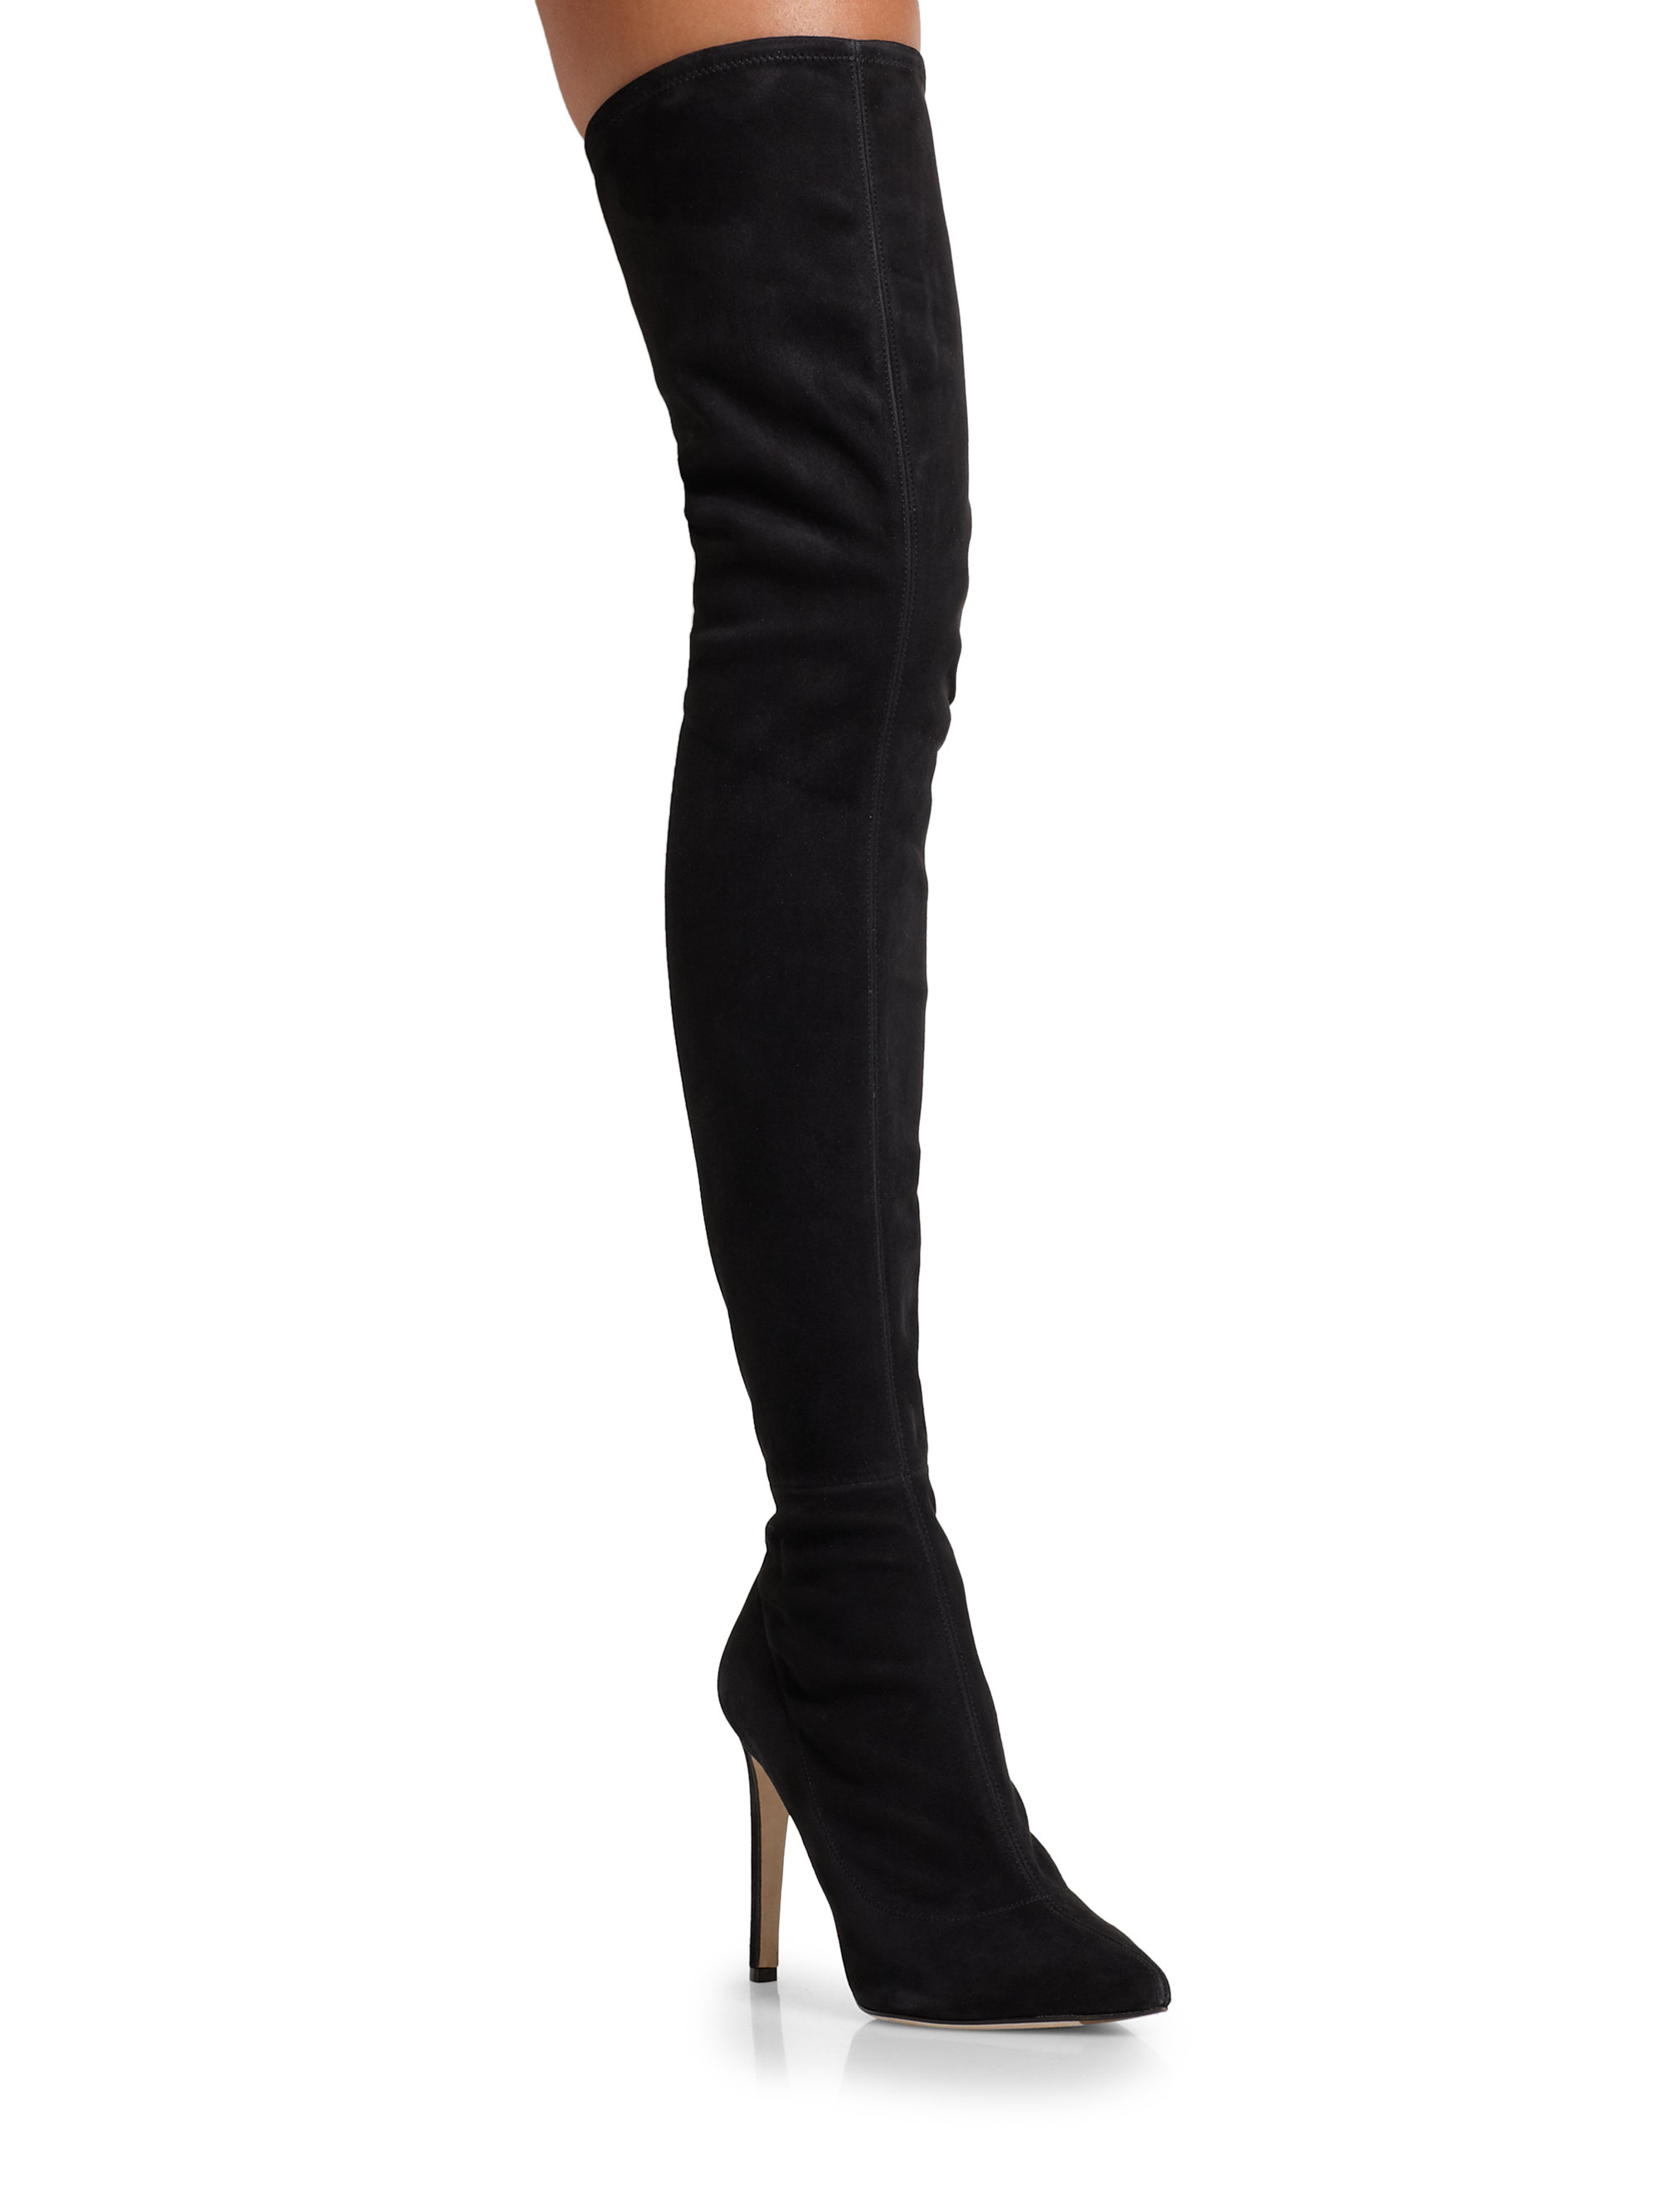 Sergio rossi Matrix Suede Over-The-Knee Boots in Black | Lyst